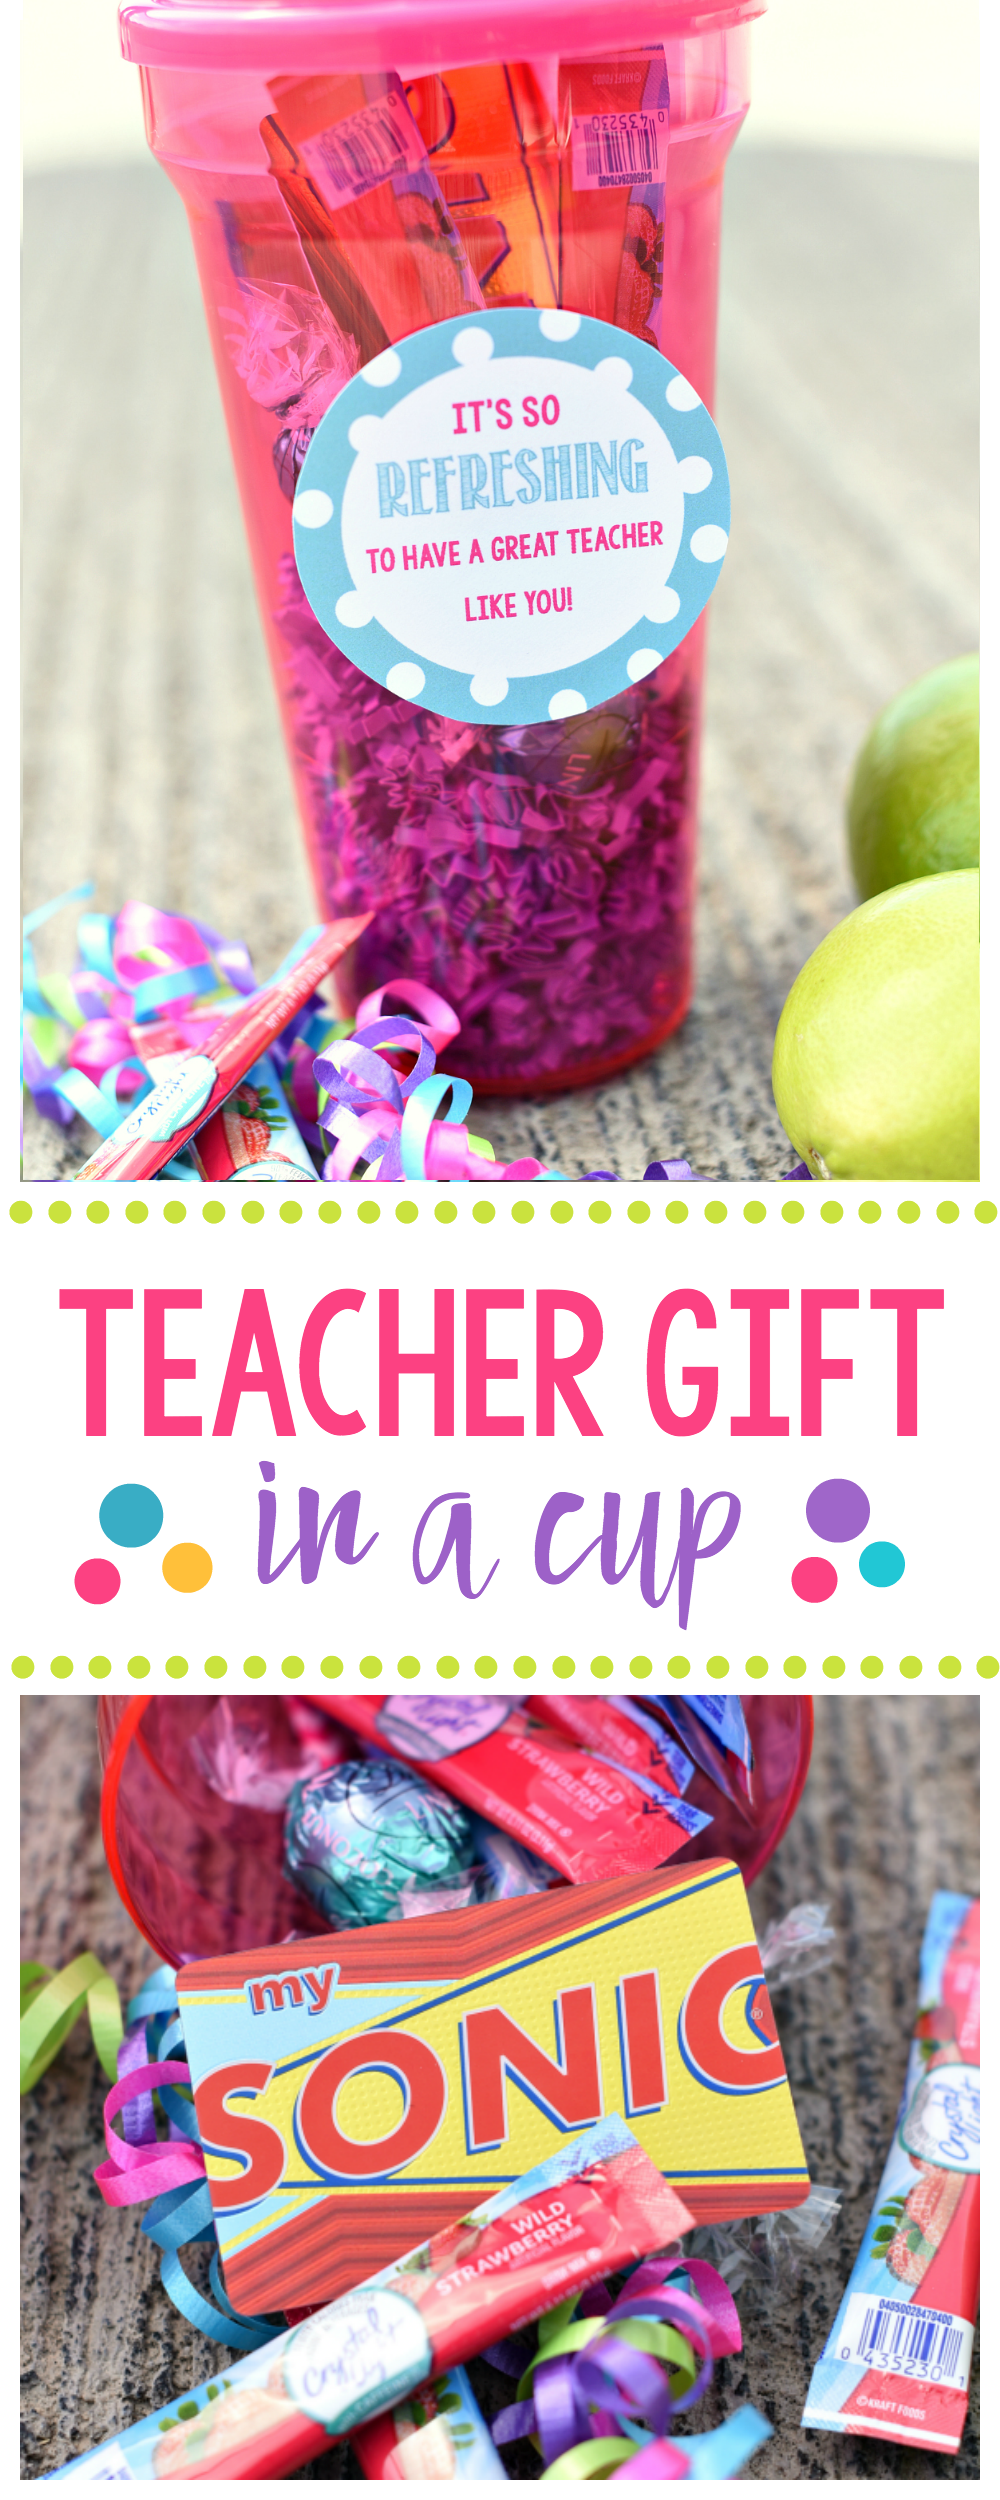 Refreshing and Fun Teacher Gift in a Cup